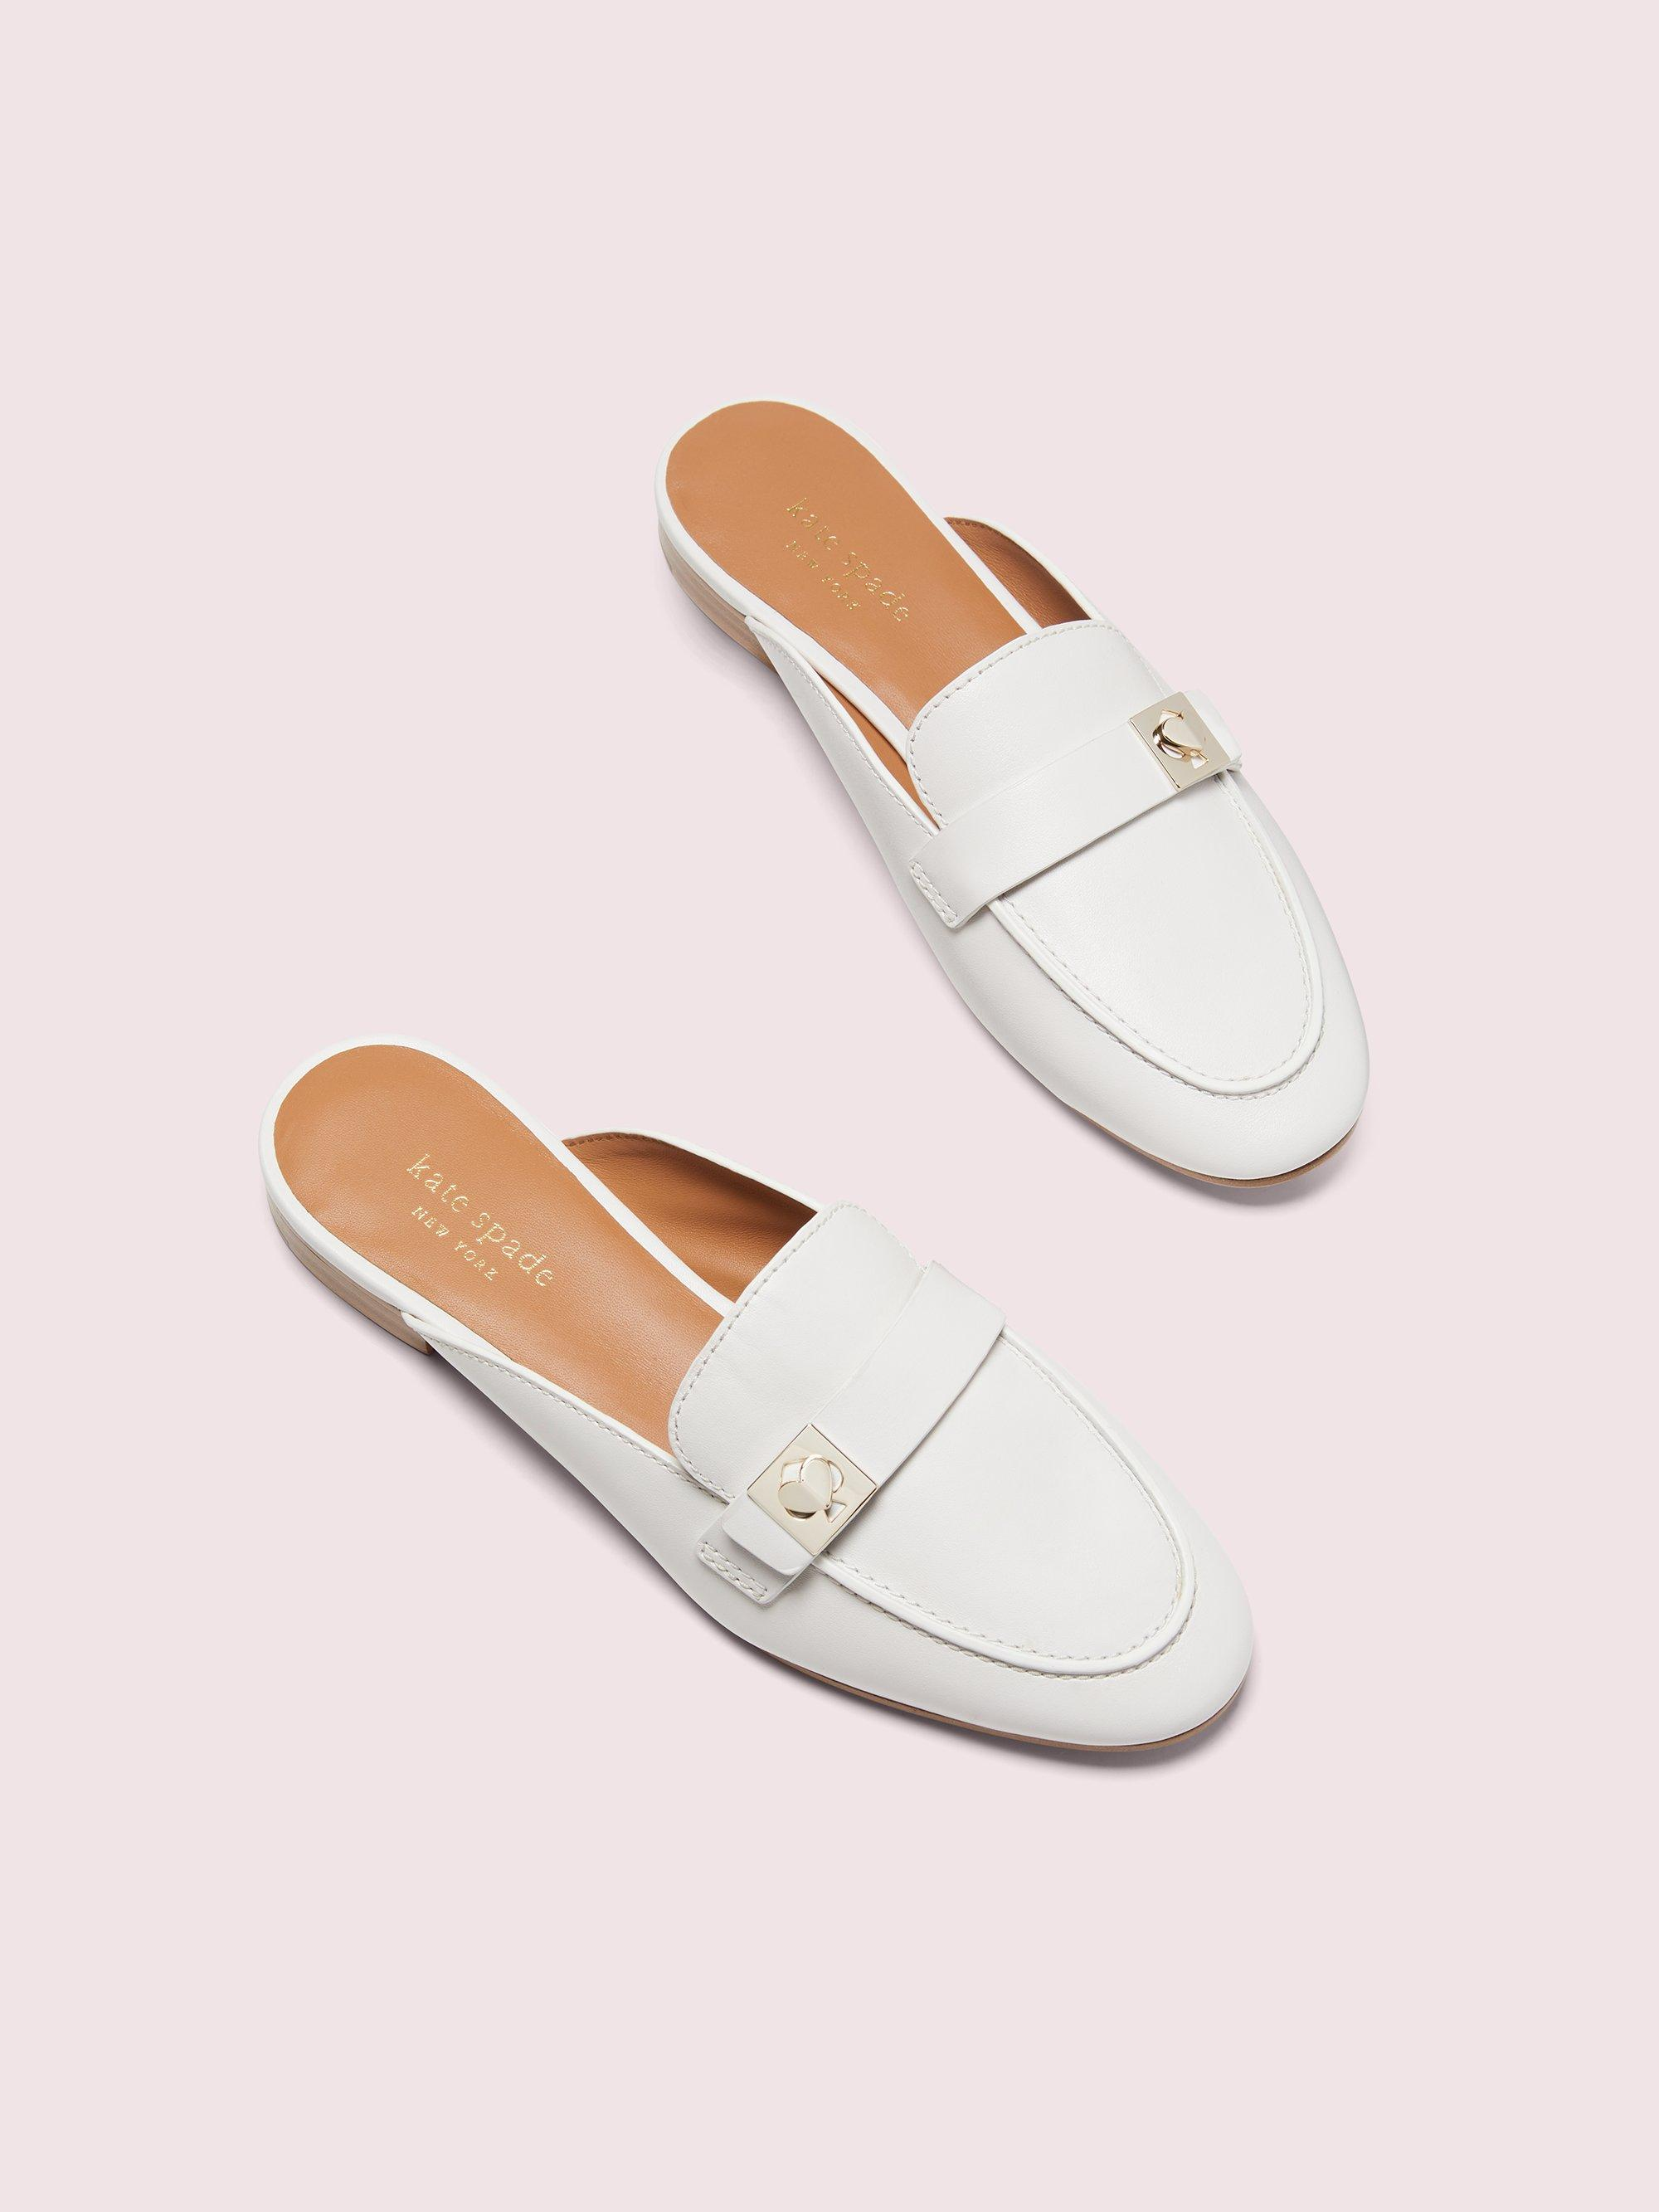 Kate Spade Leather Catroux Loafer Mule